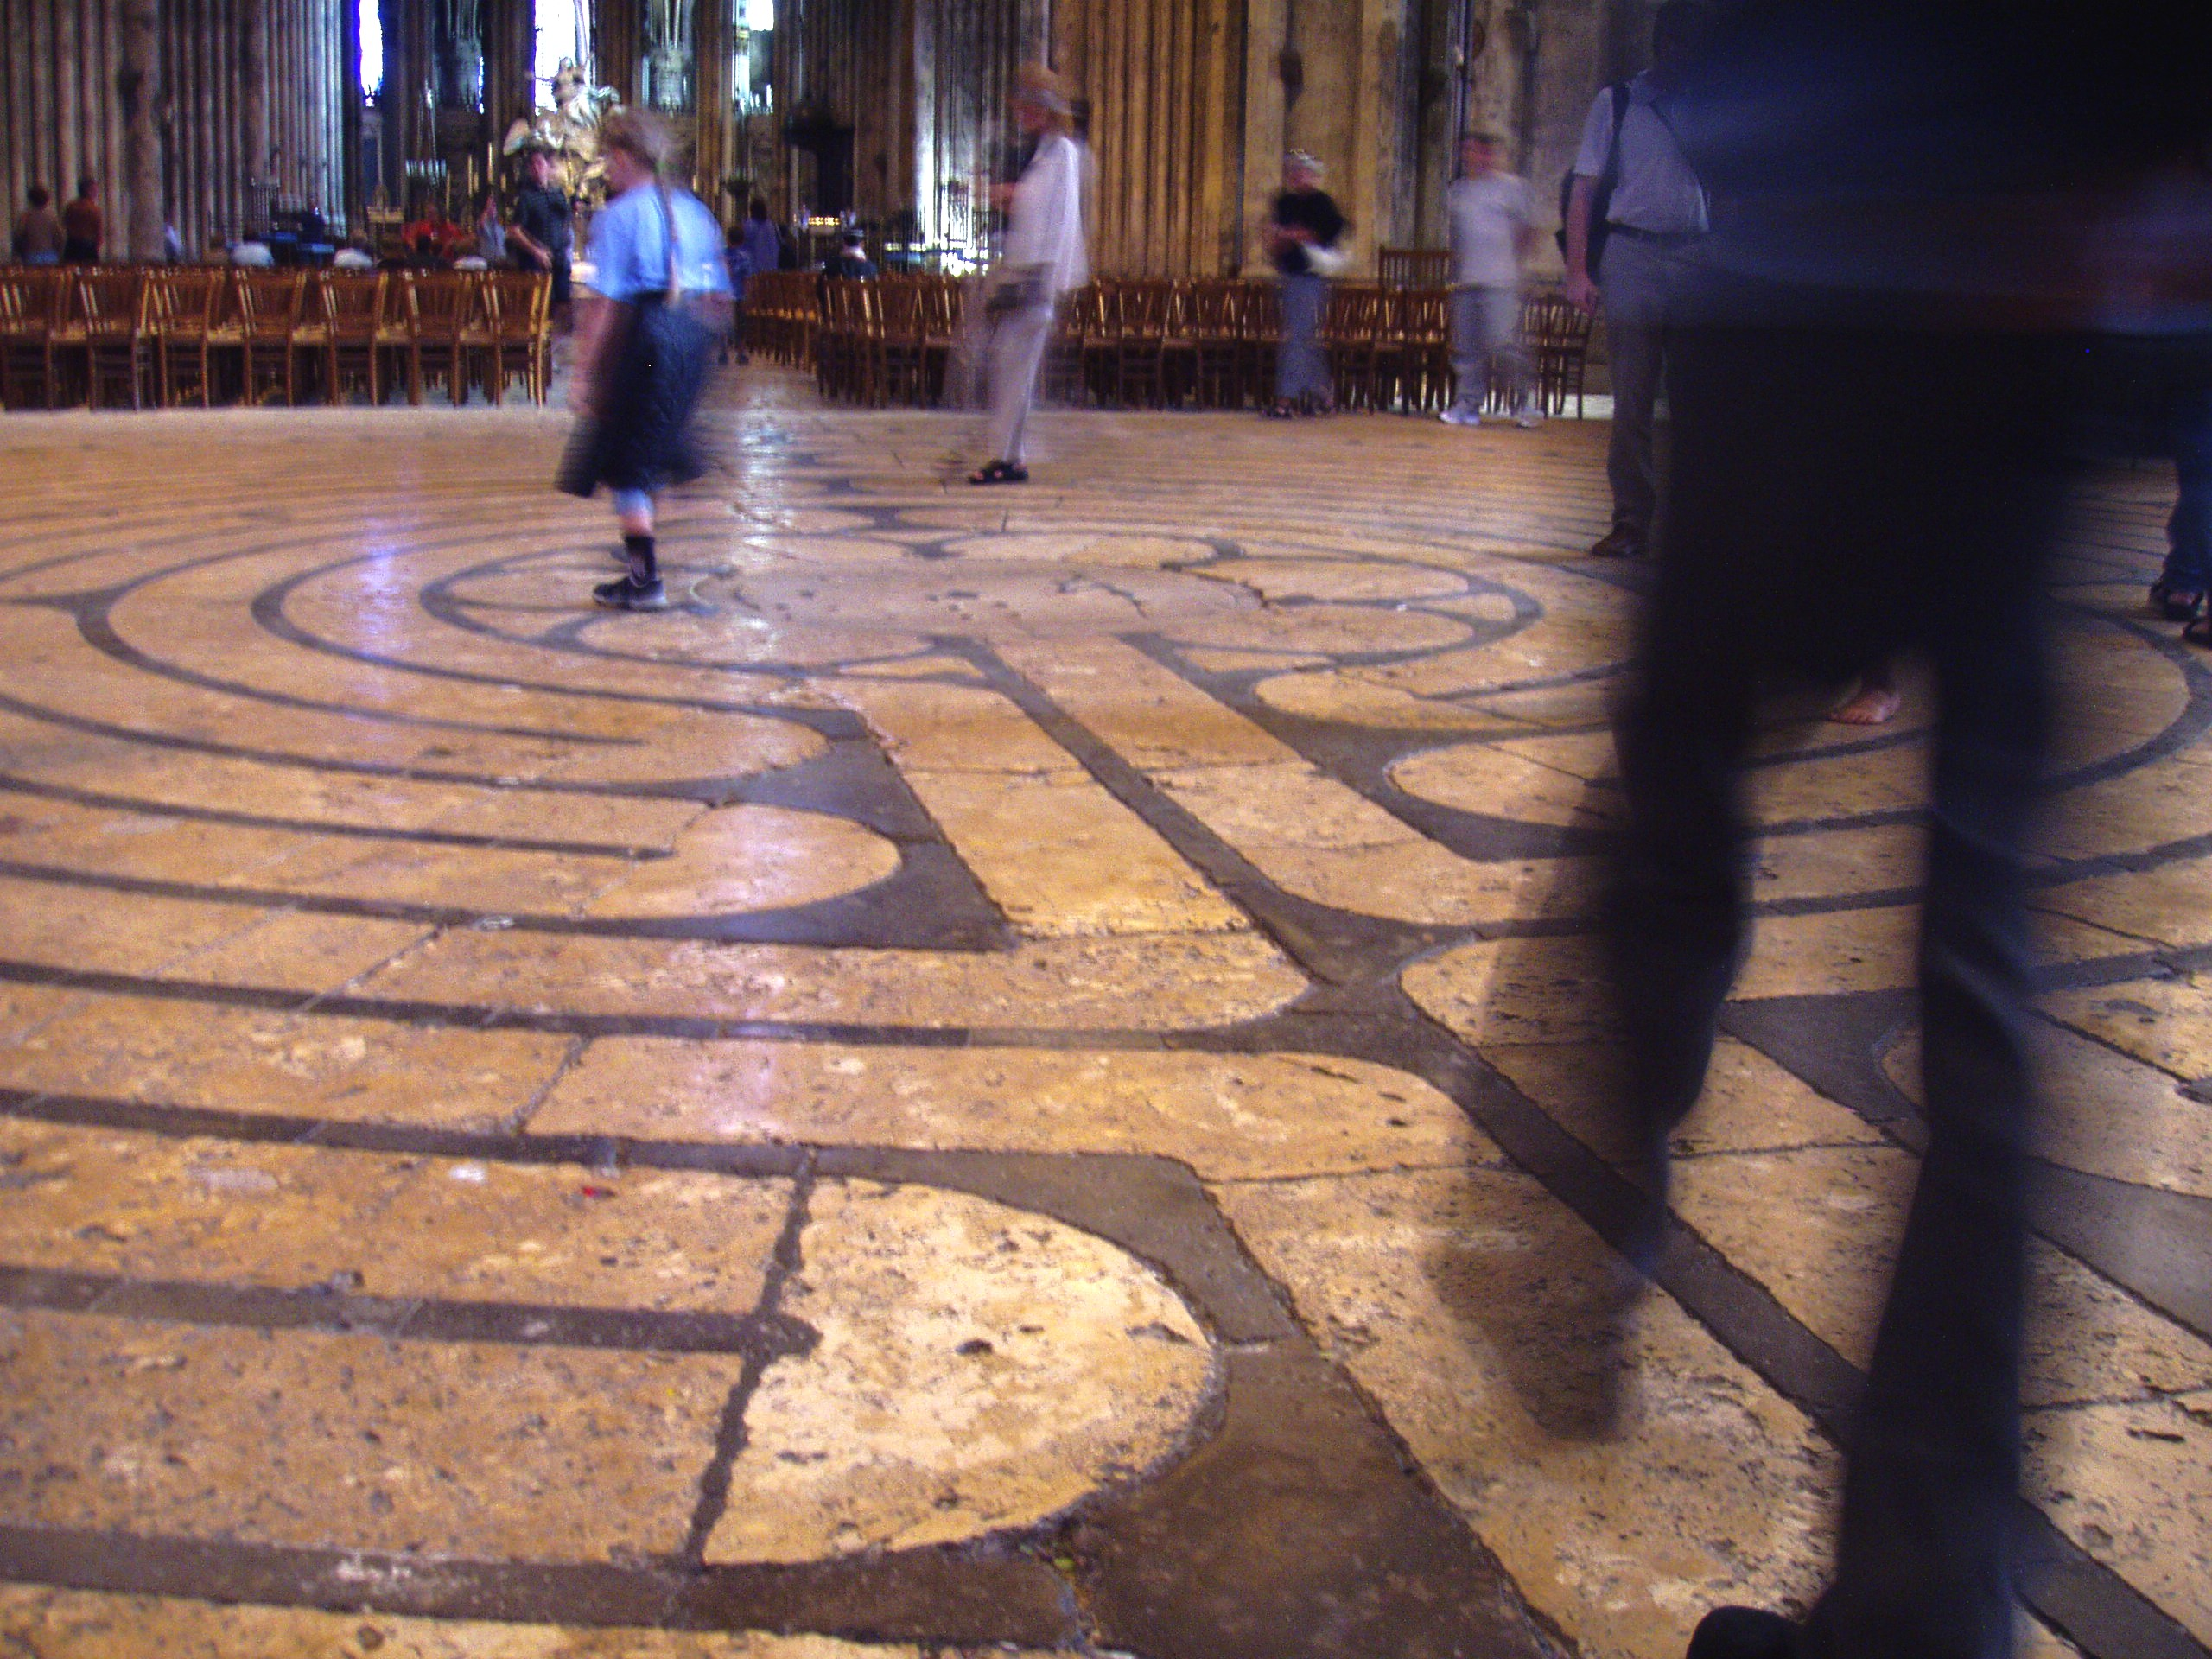 The labyrinth at Chartres Cathedral